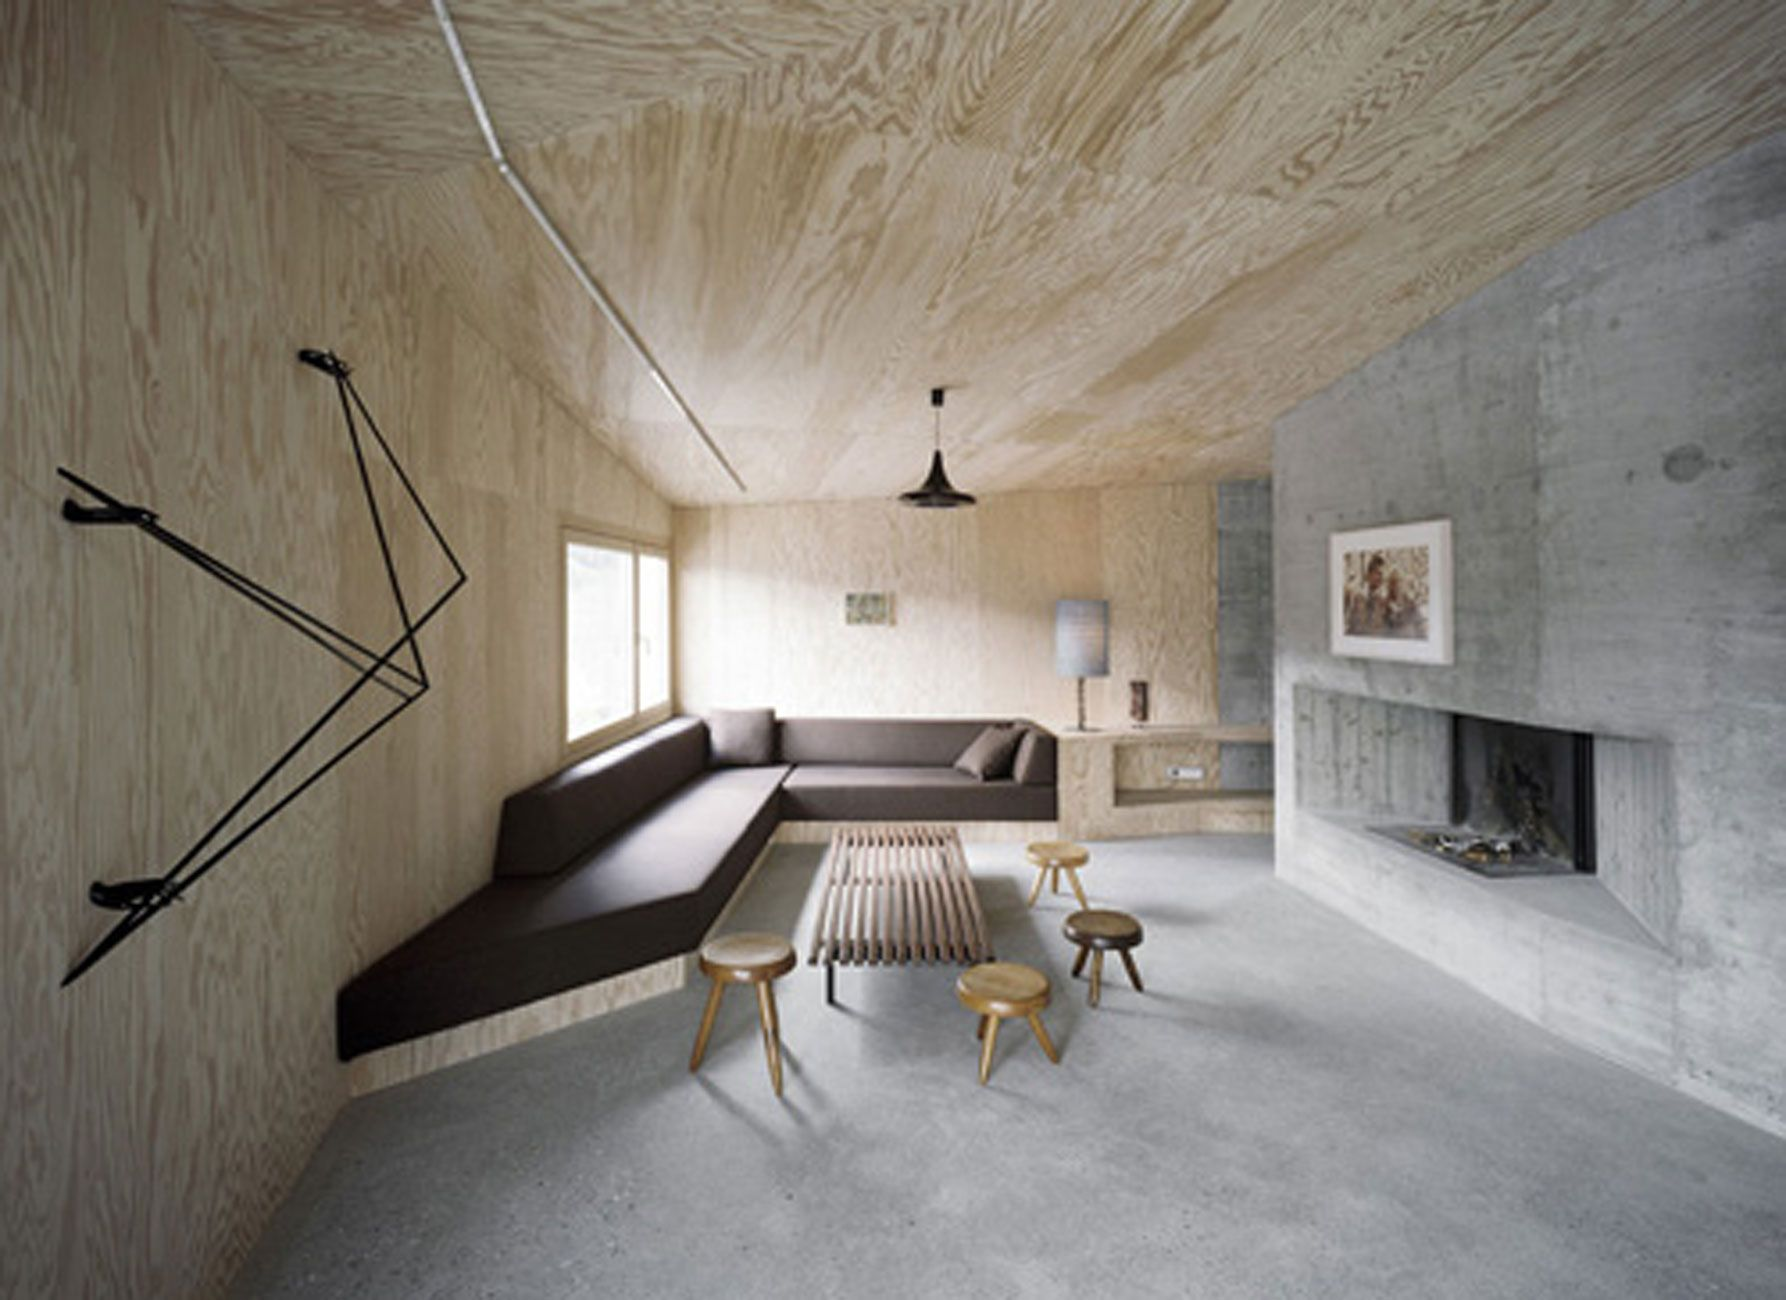 Solid concrete house architecture and minimalist interior for Minimalist home interior